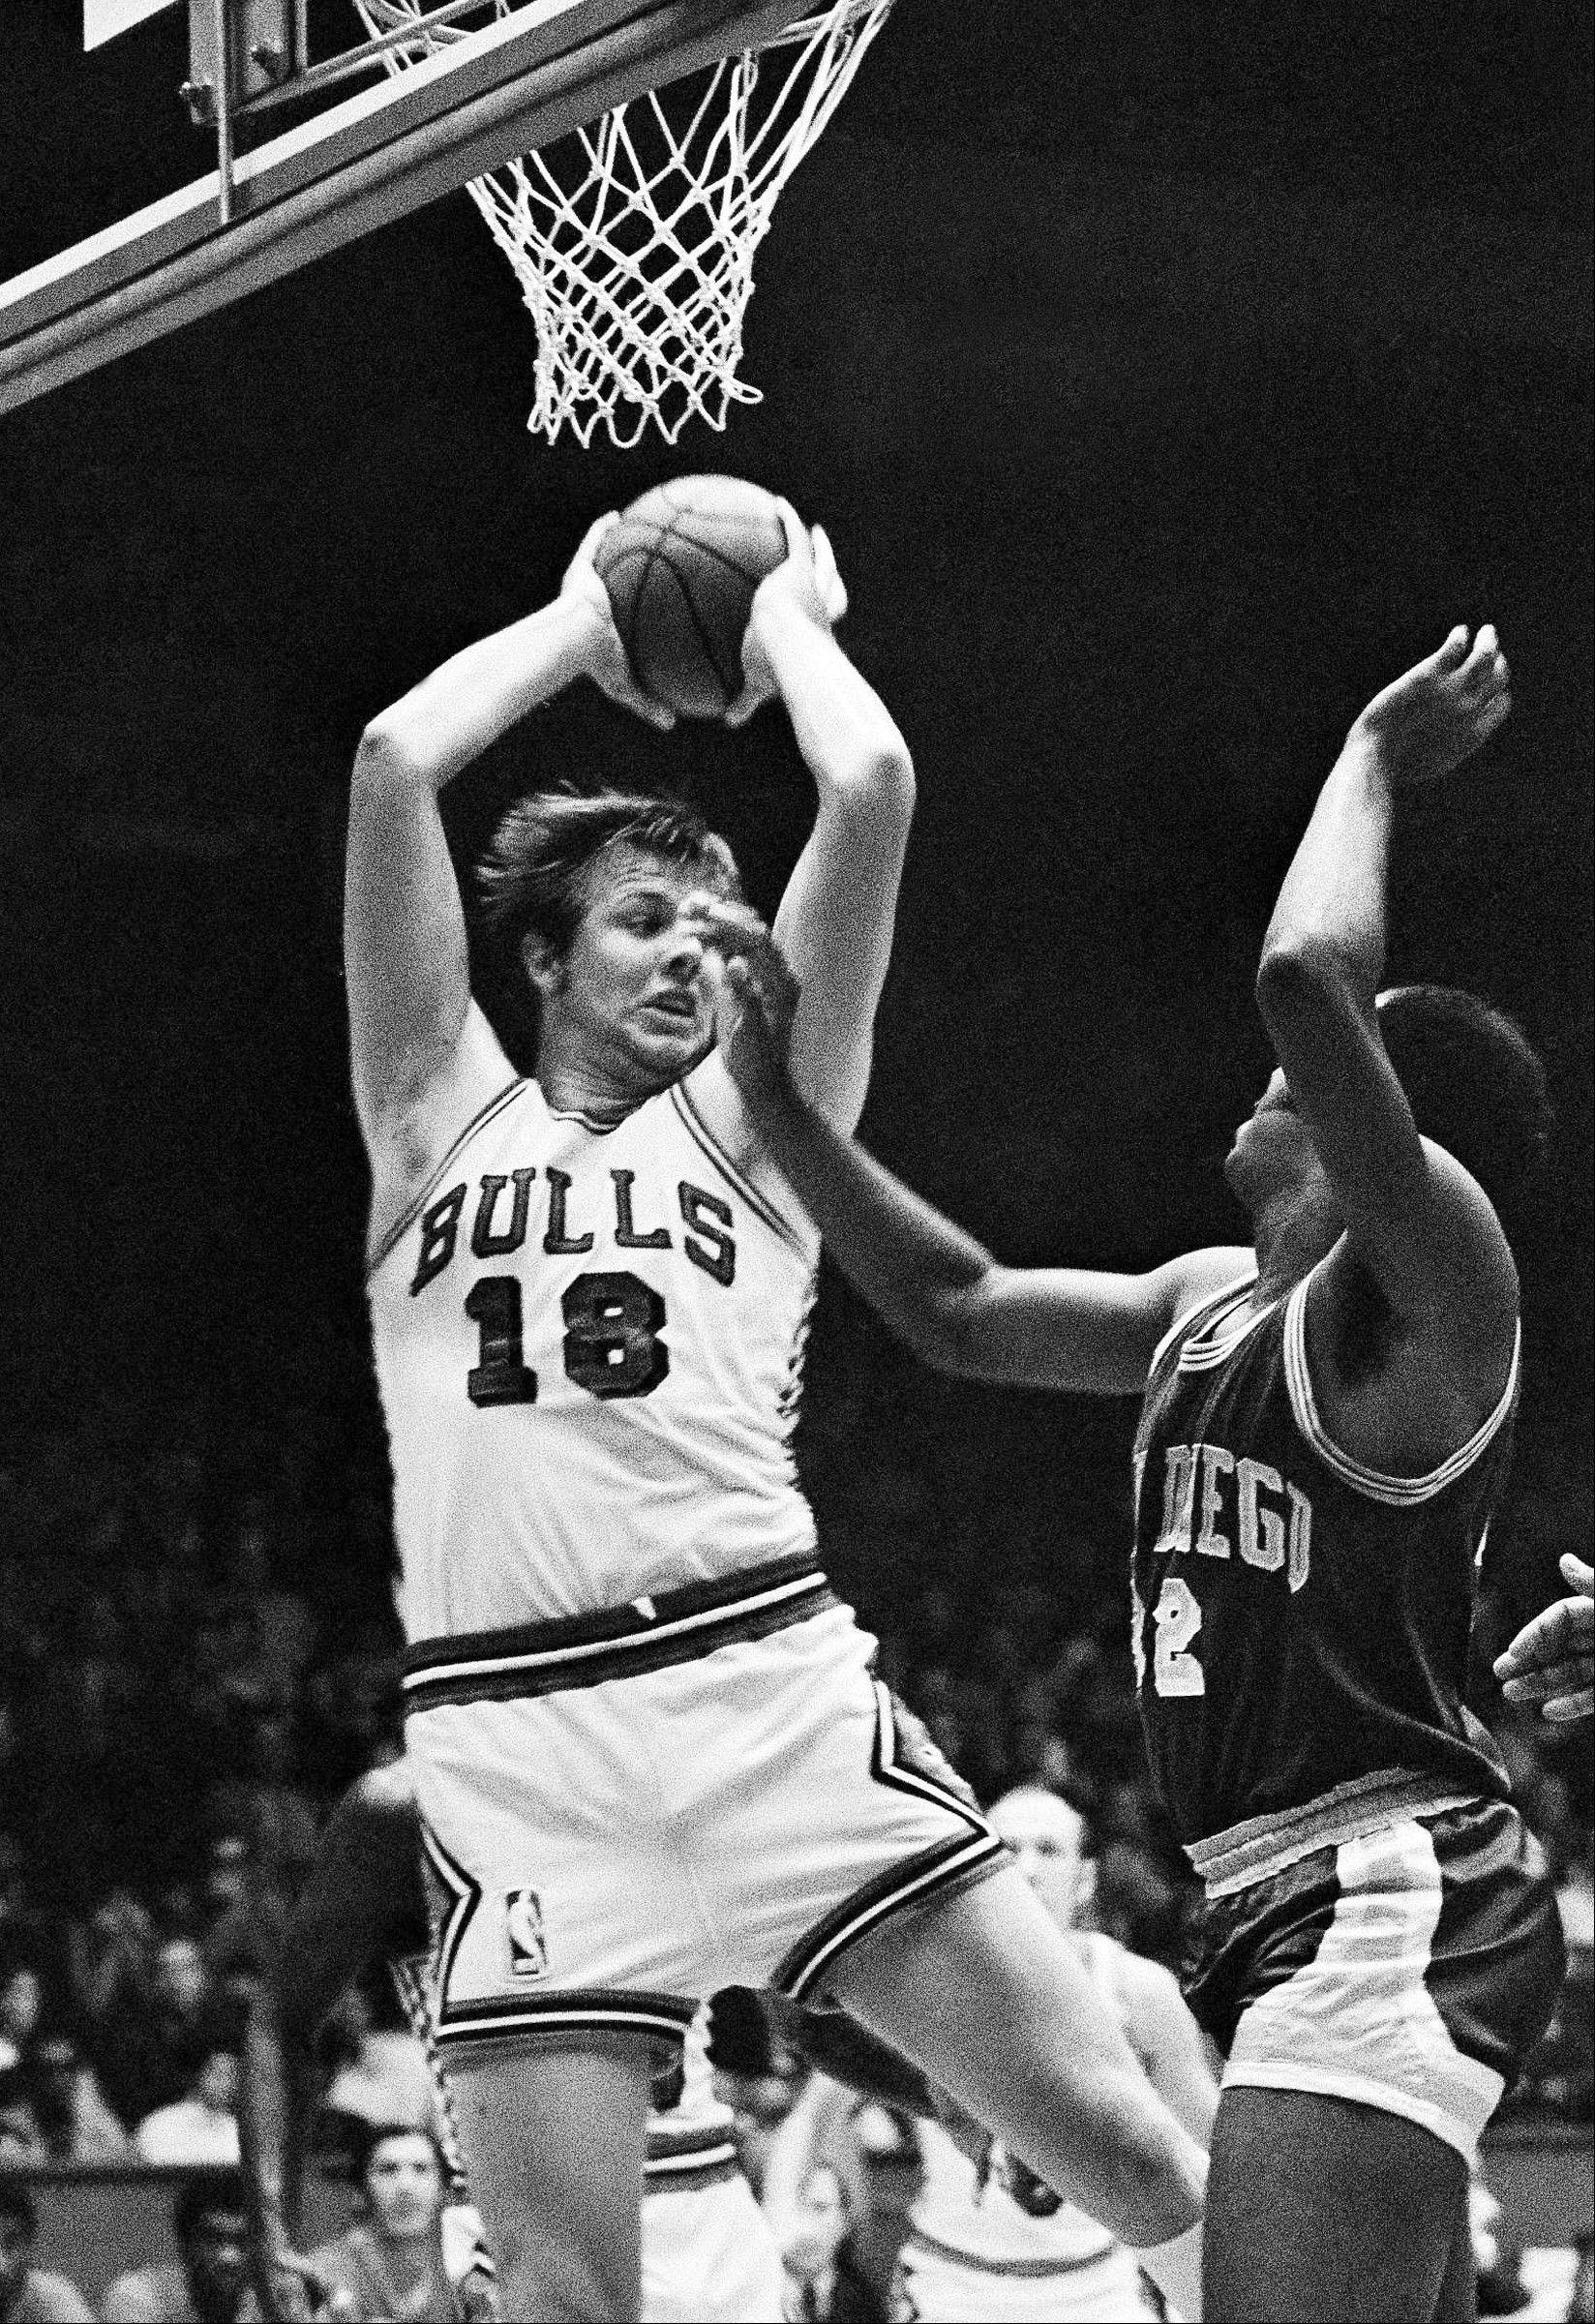 In this Oct. 13, 1970 file photo, Chicago Bulls' Tom Boerwinkle (18) grabs a rebound against San Diego Rockets' Don Adams (32) during an NBA basketball game in Chicago. Boerwinkle, who played 10 seasons with the Bulls, died Tuesday, March 26, 2013, at age 67.